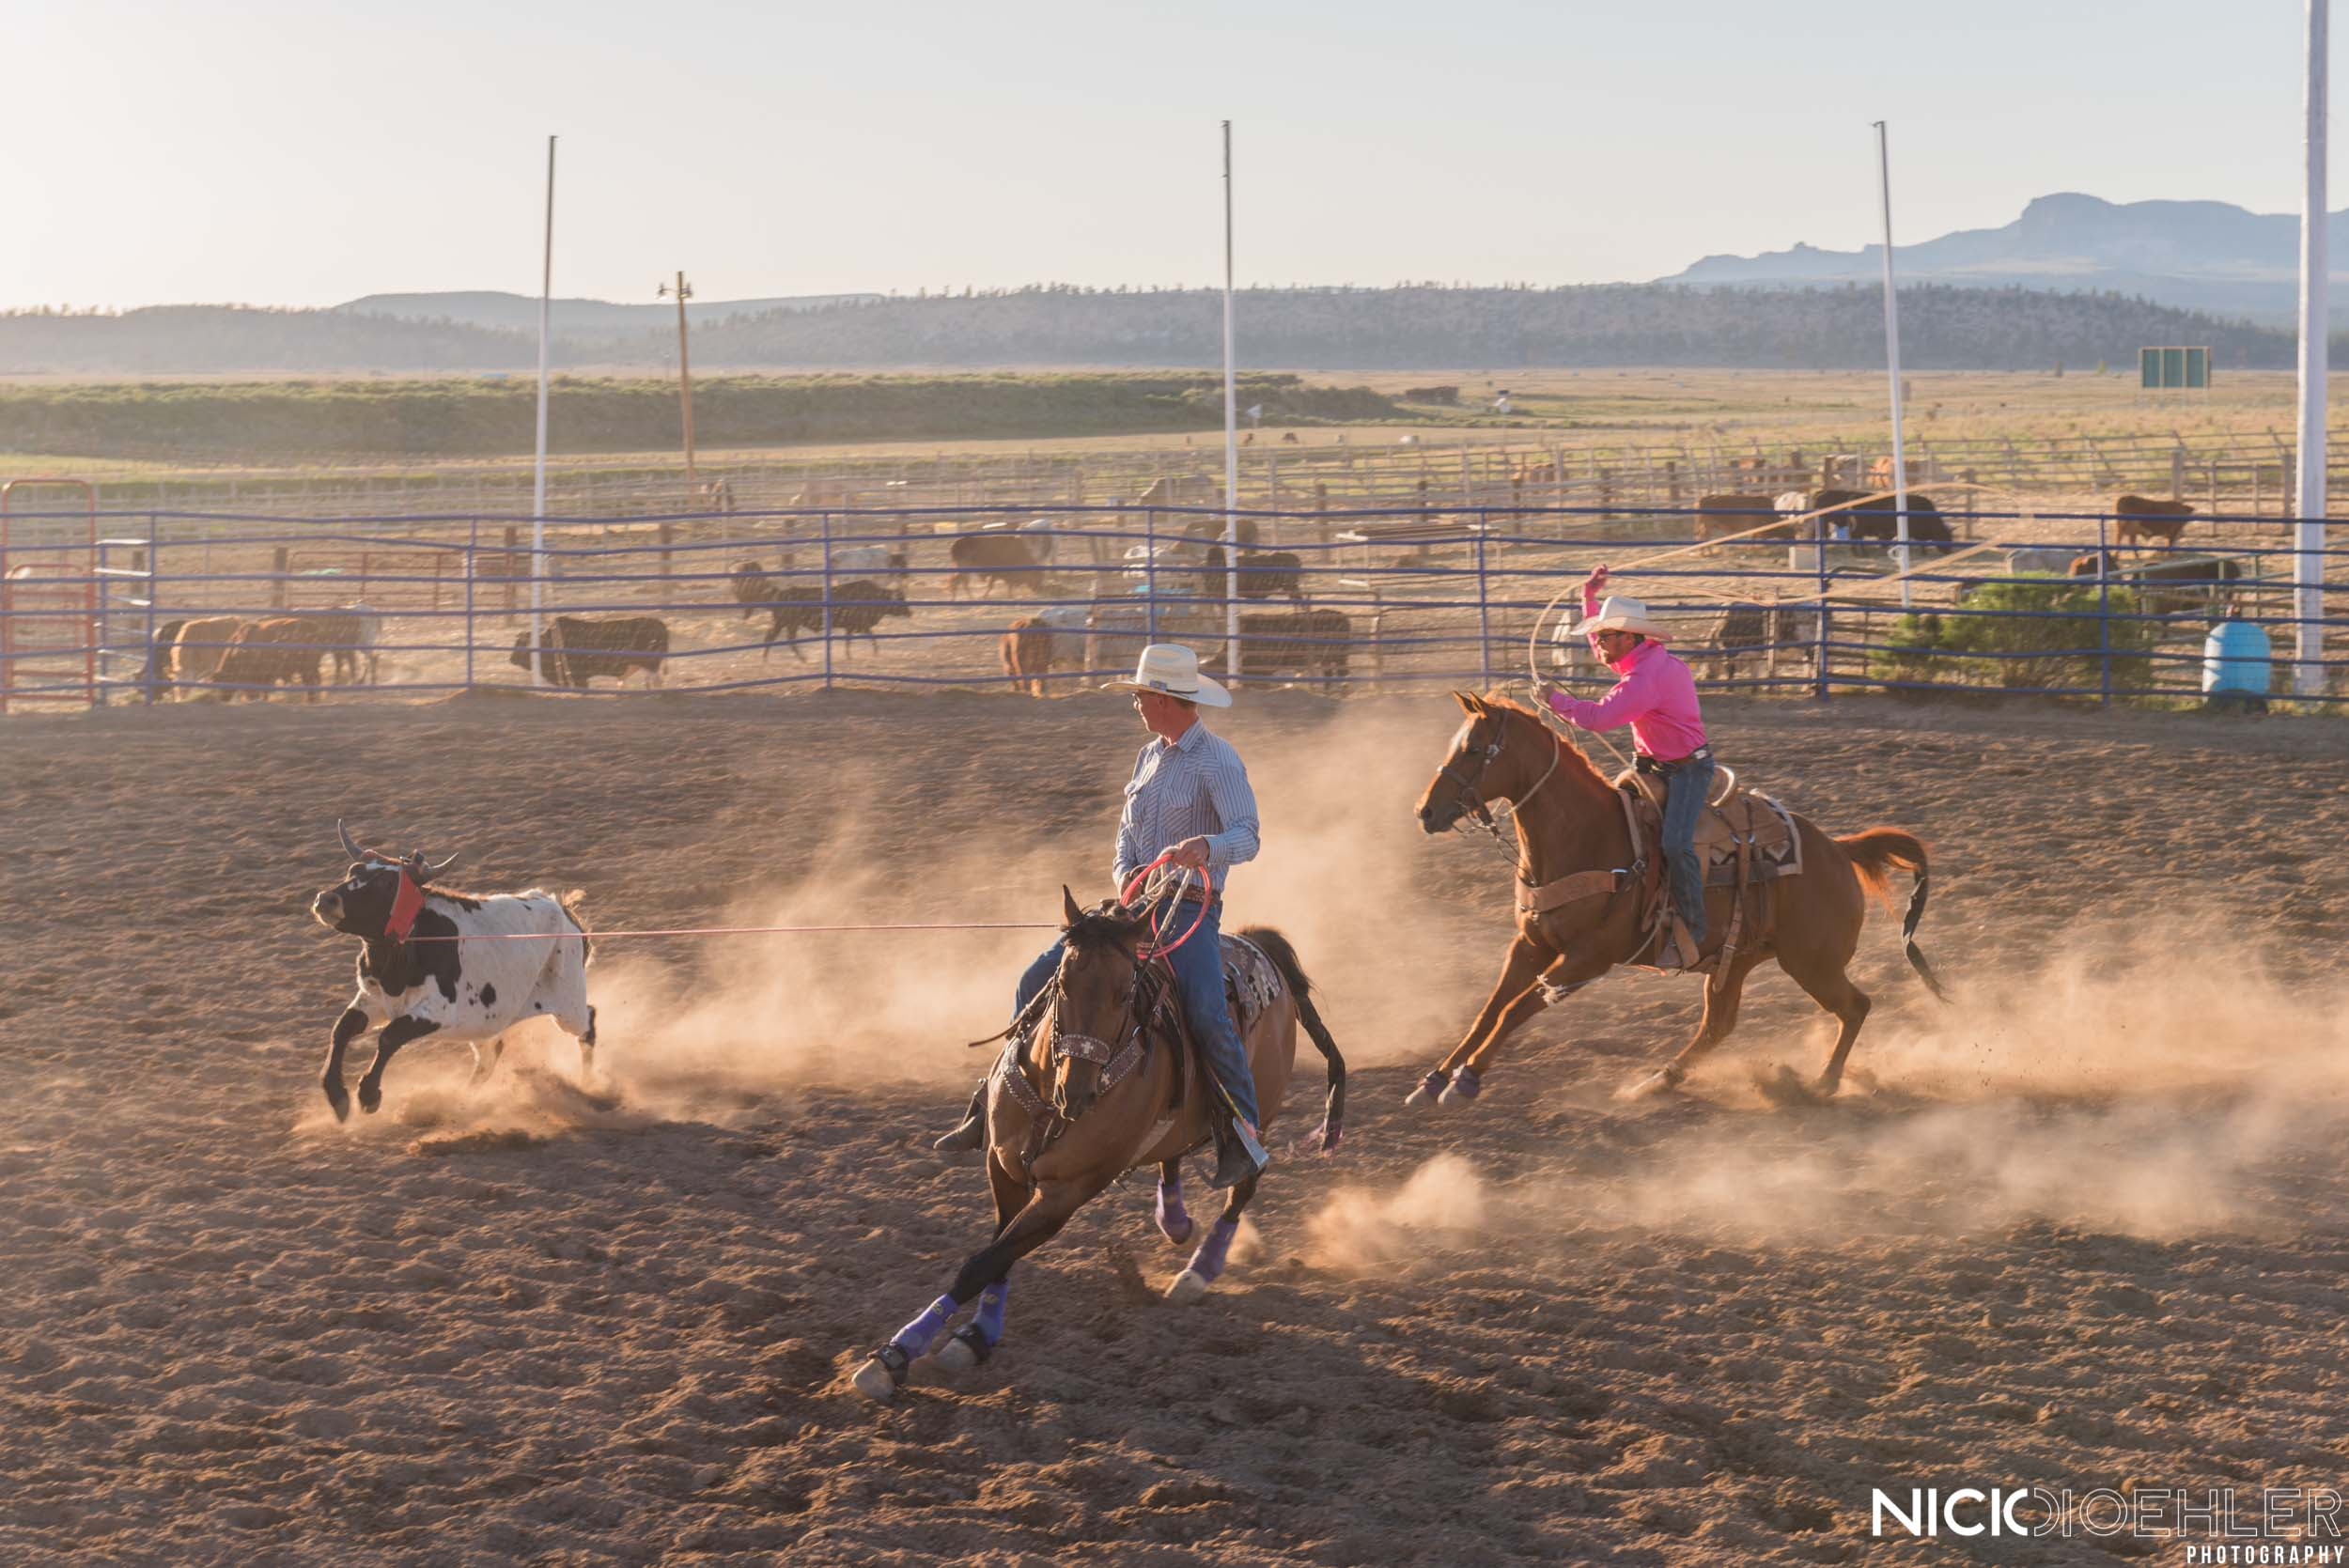 Bryce, Utah: I've always wanted to see a rodeo. So this was my one time!